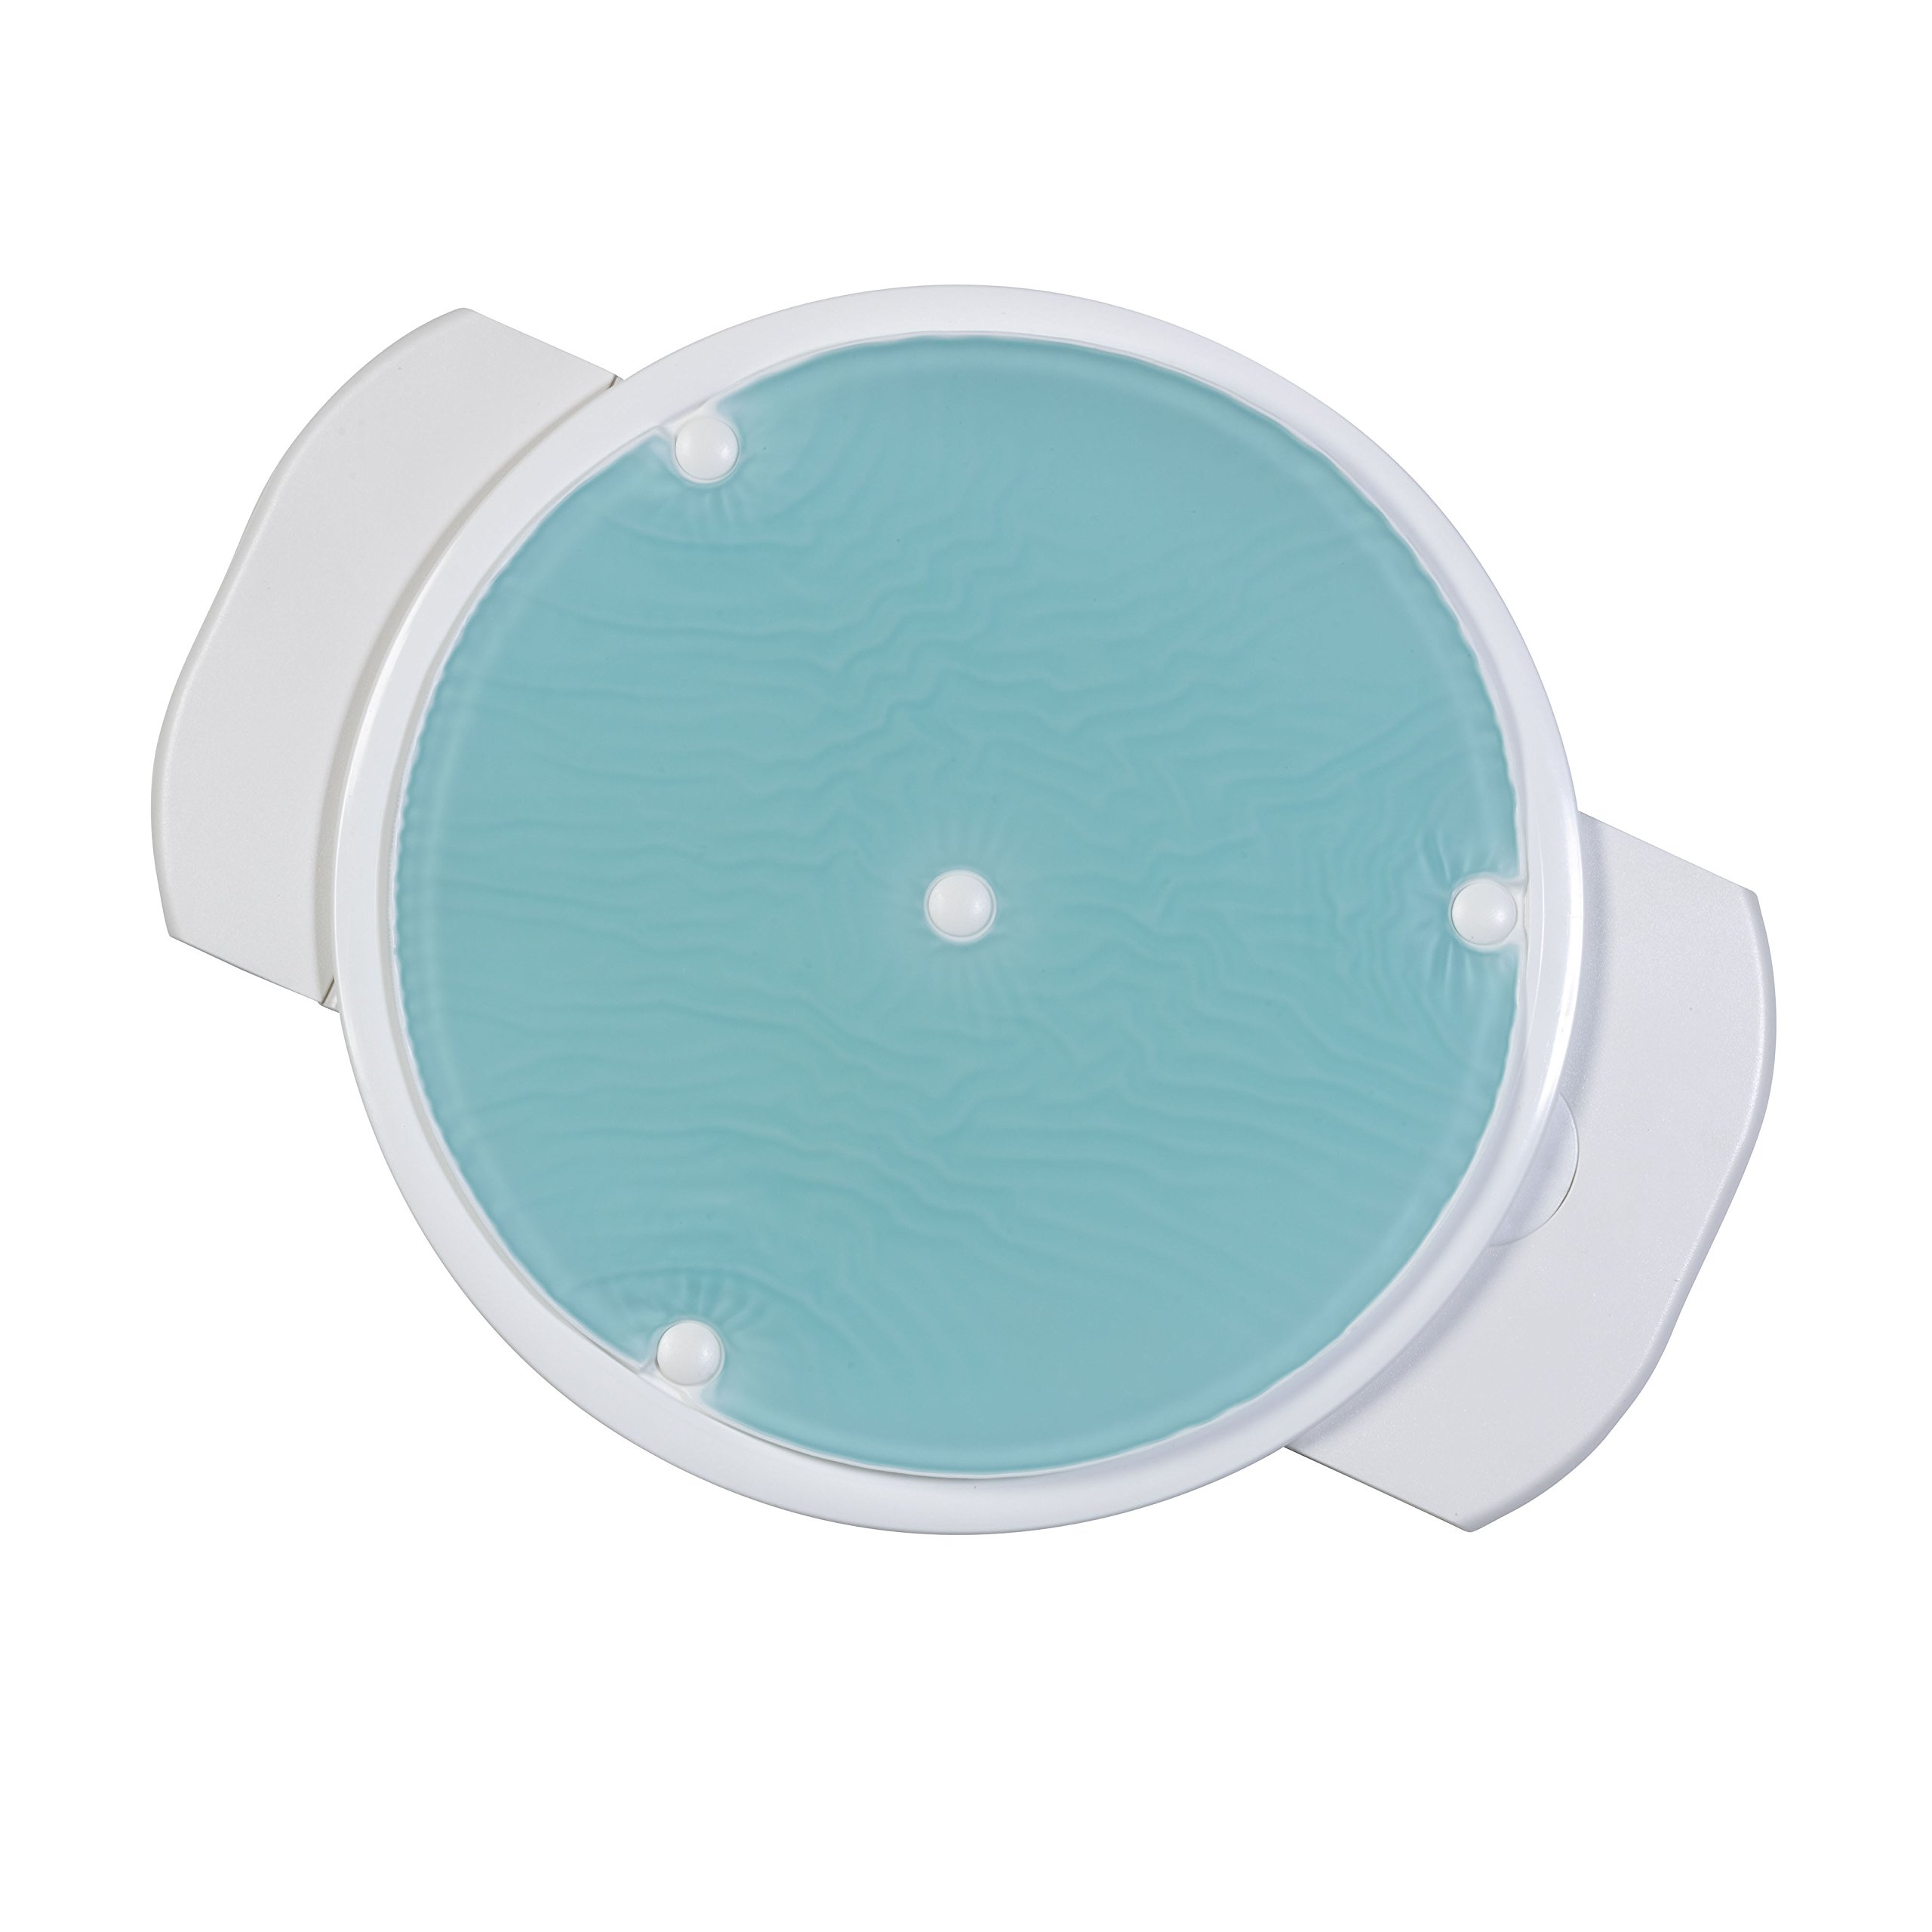 Drive Medical Aquajoy Swivel Slider for Bathlift, Blue